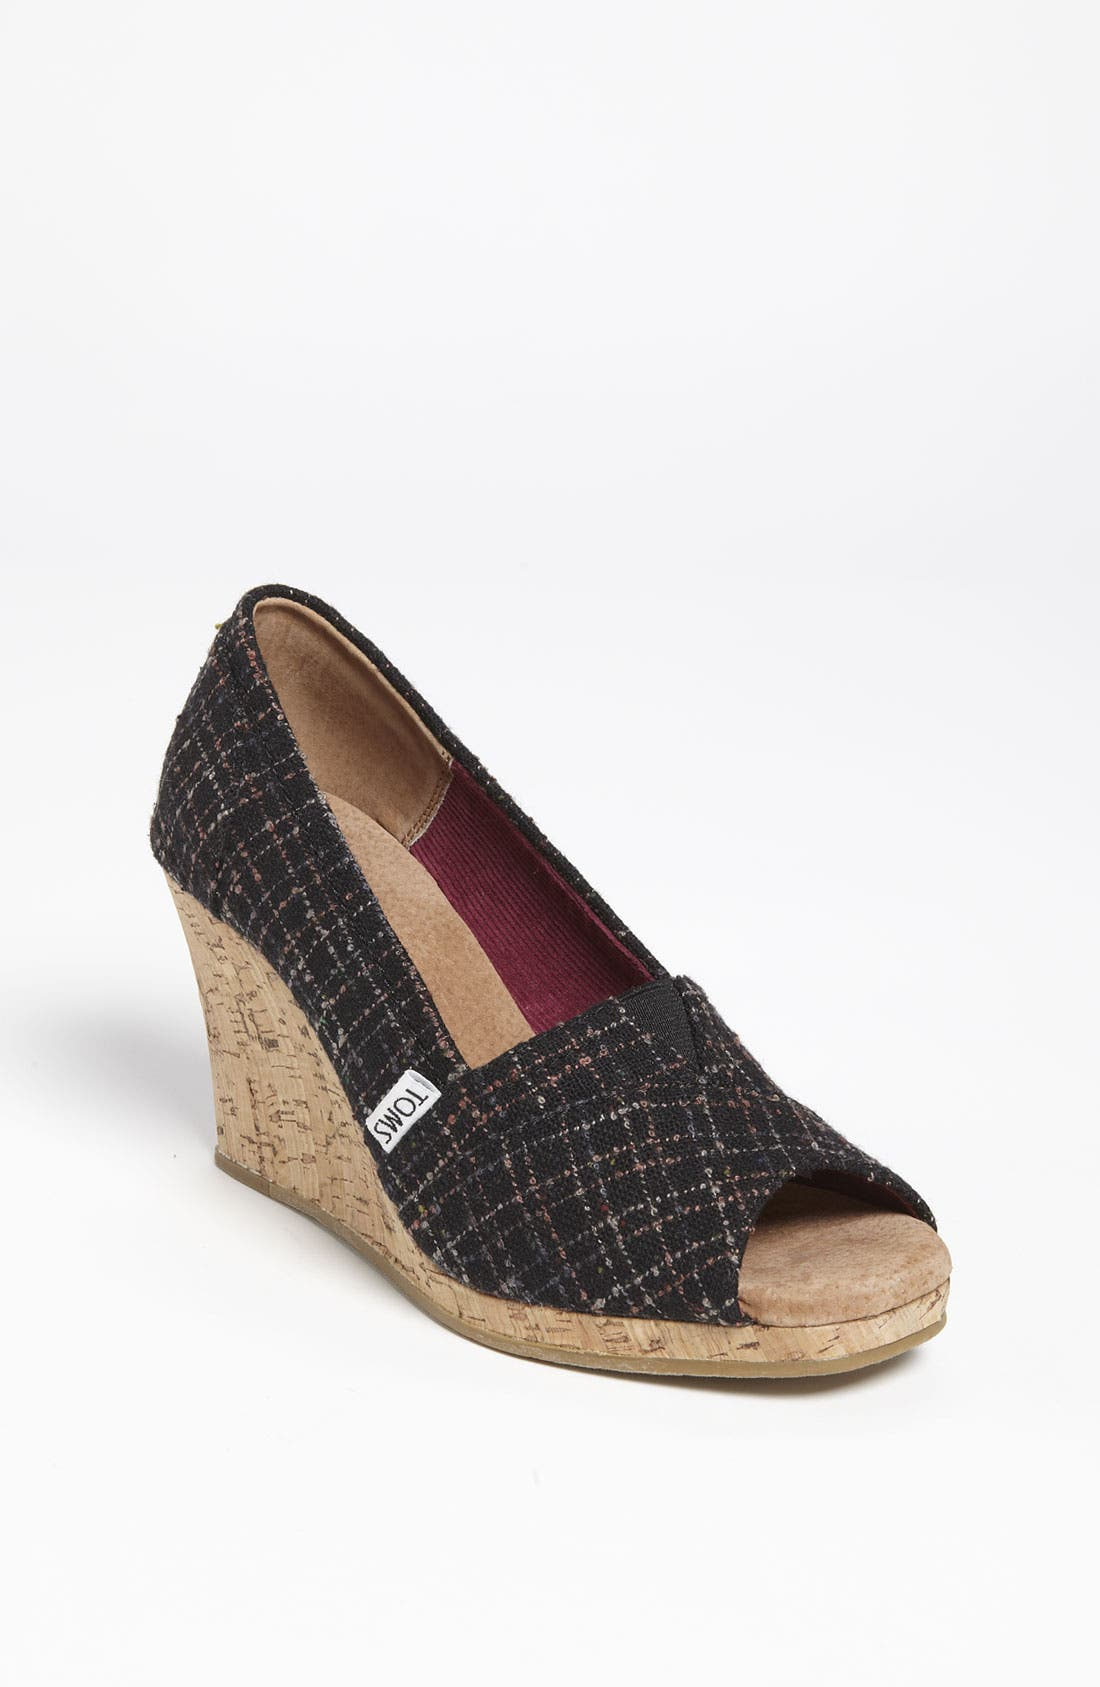 Alternate Image 1 Selected - TOMS Bouclé Wedge